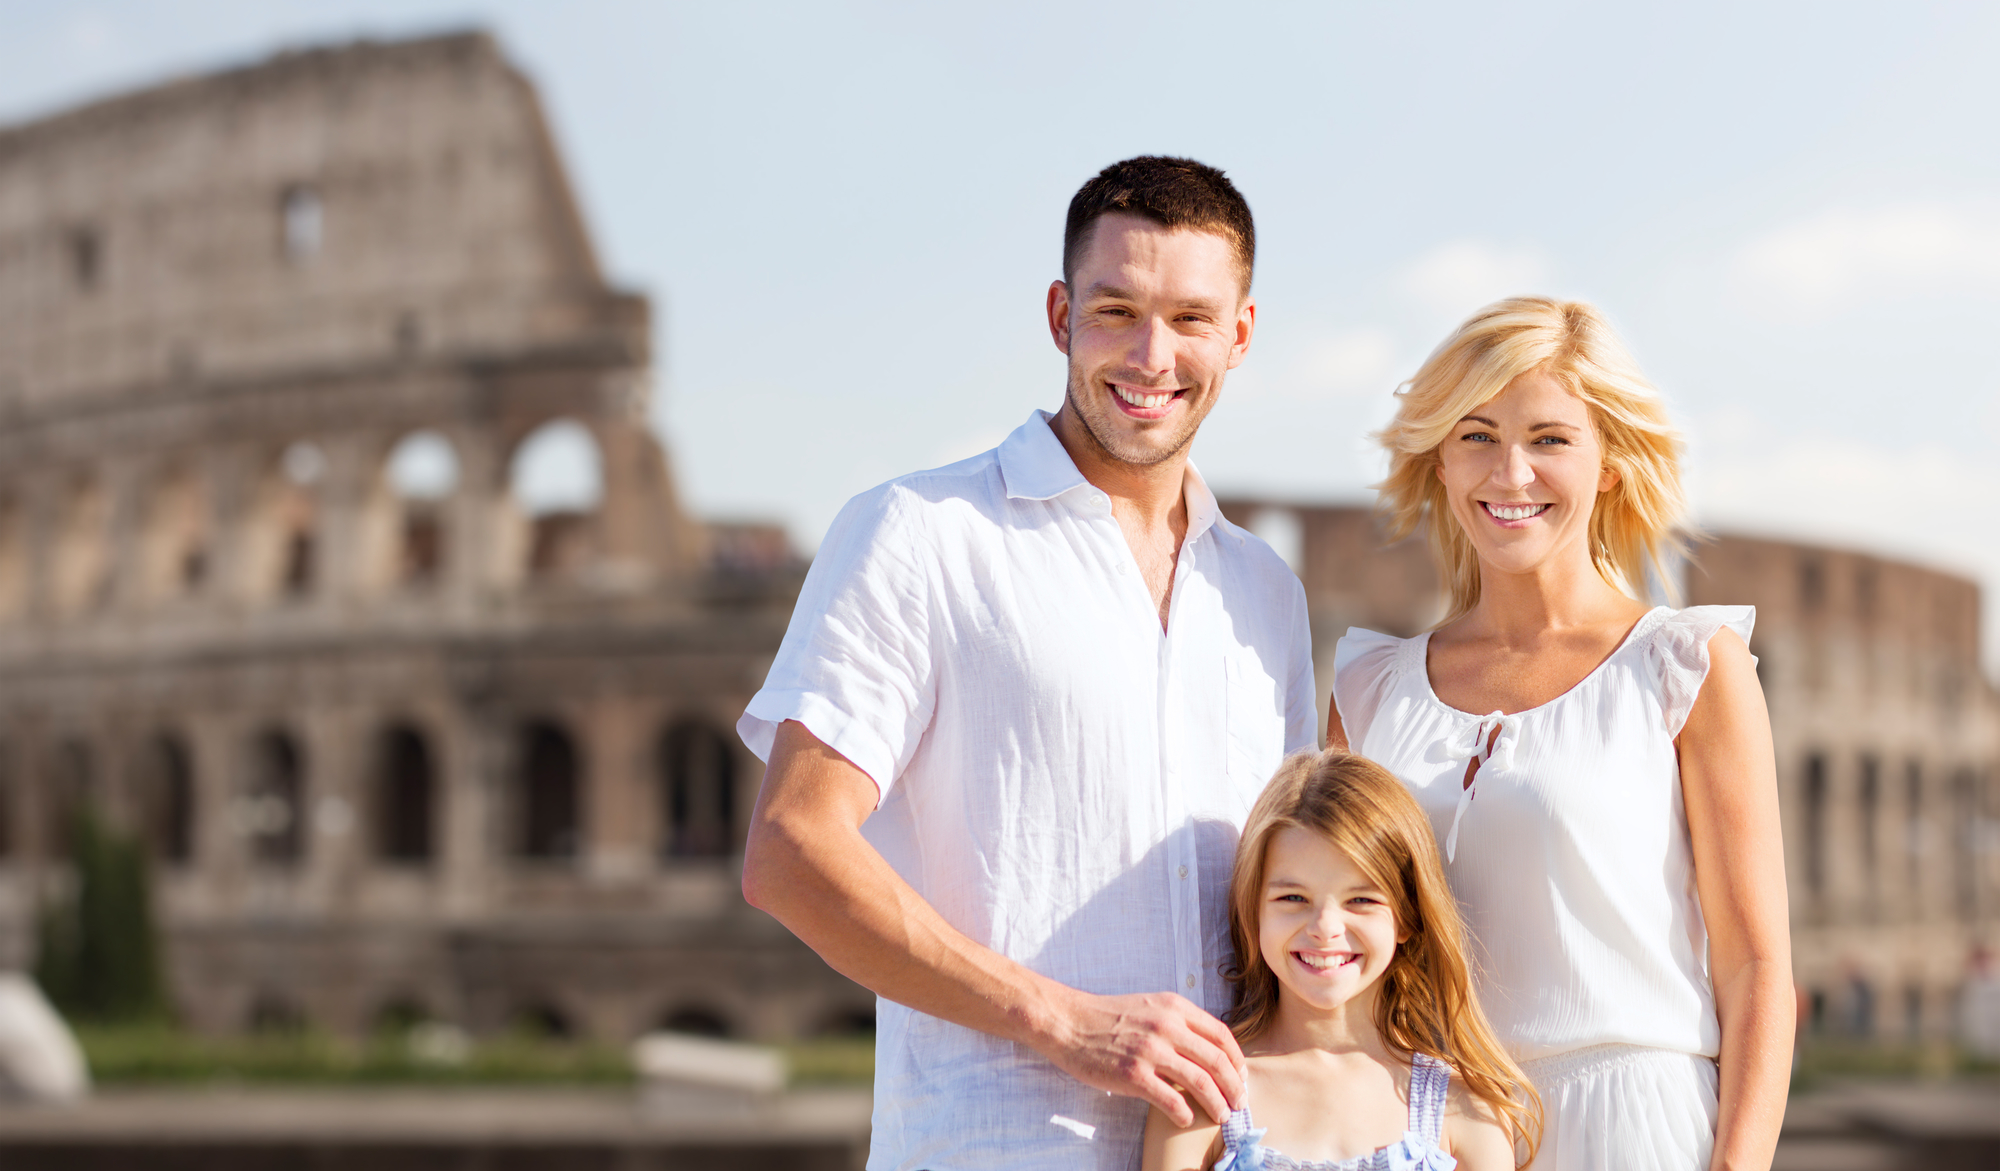 Visiting Italy – Family-friendly activities in Rome